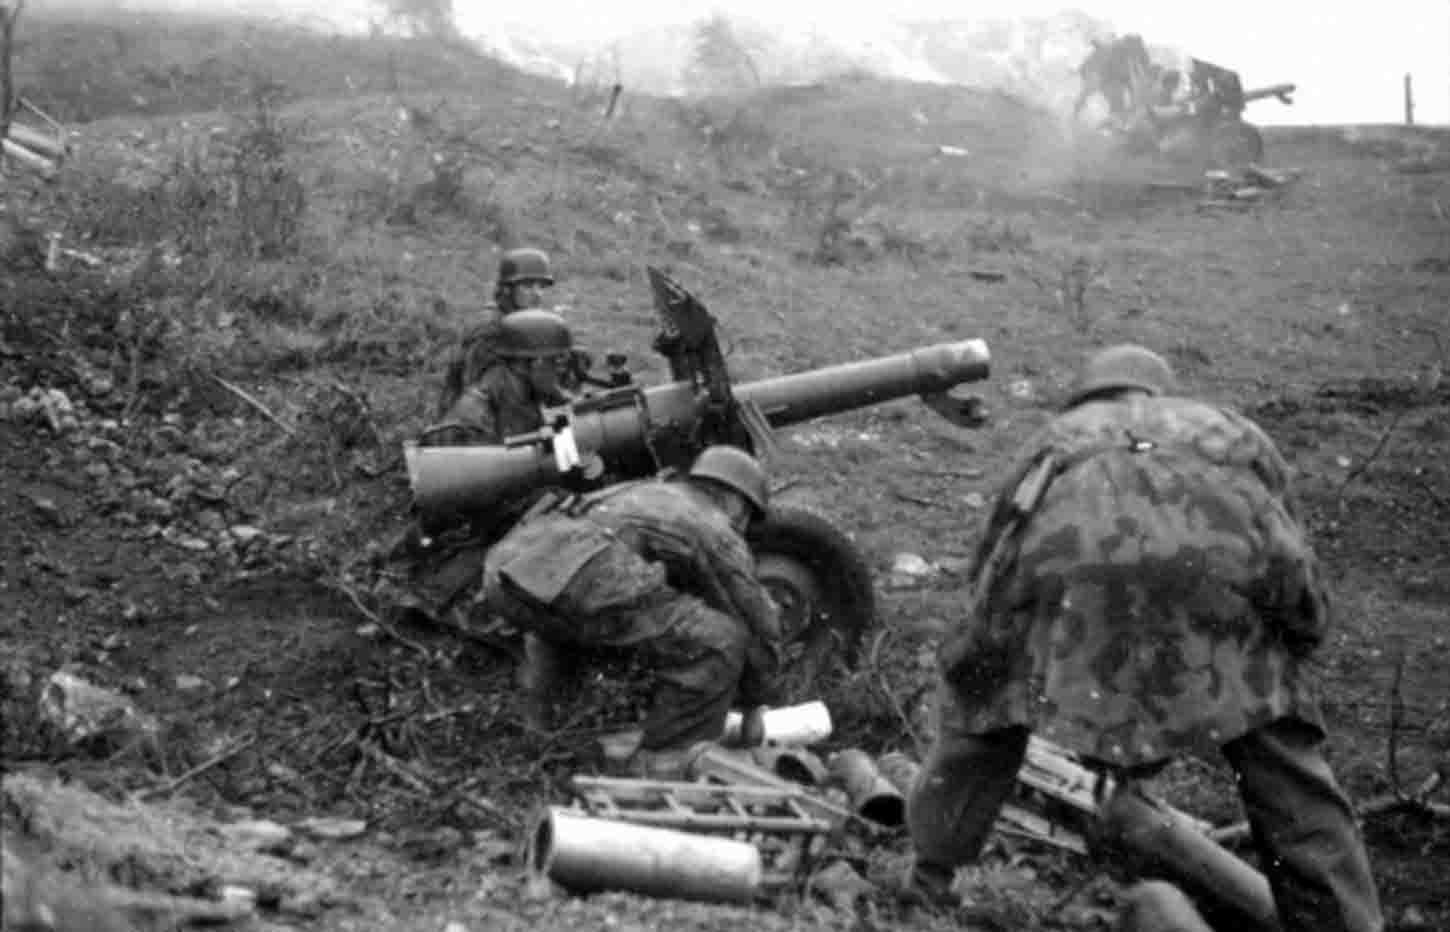 Rare photo of German 105mm LG 40 recoilless guns in combat